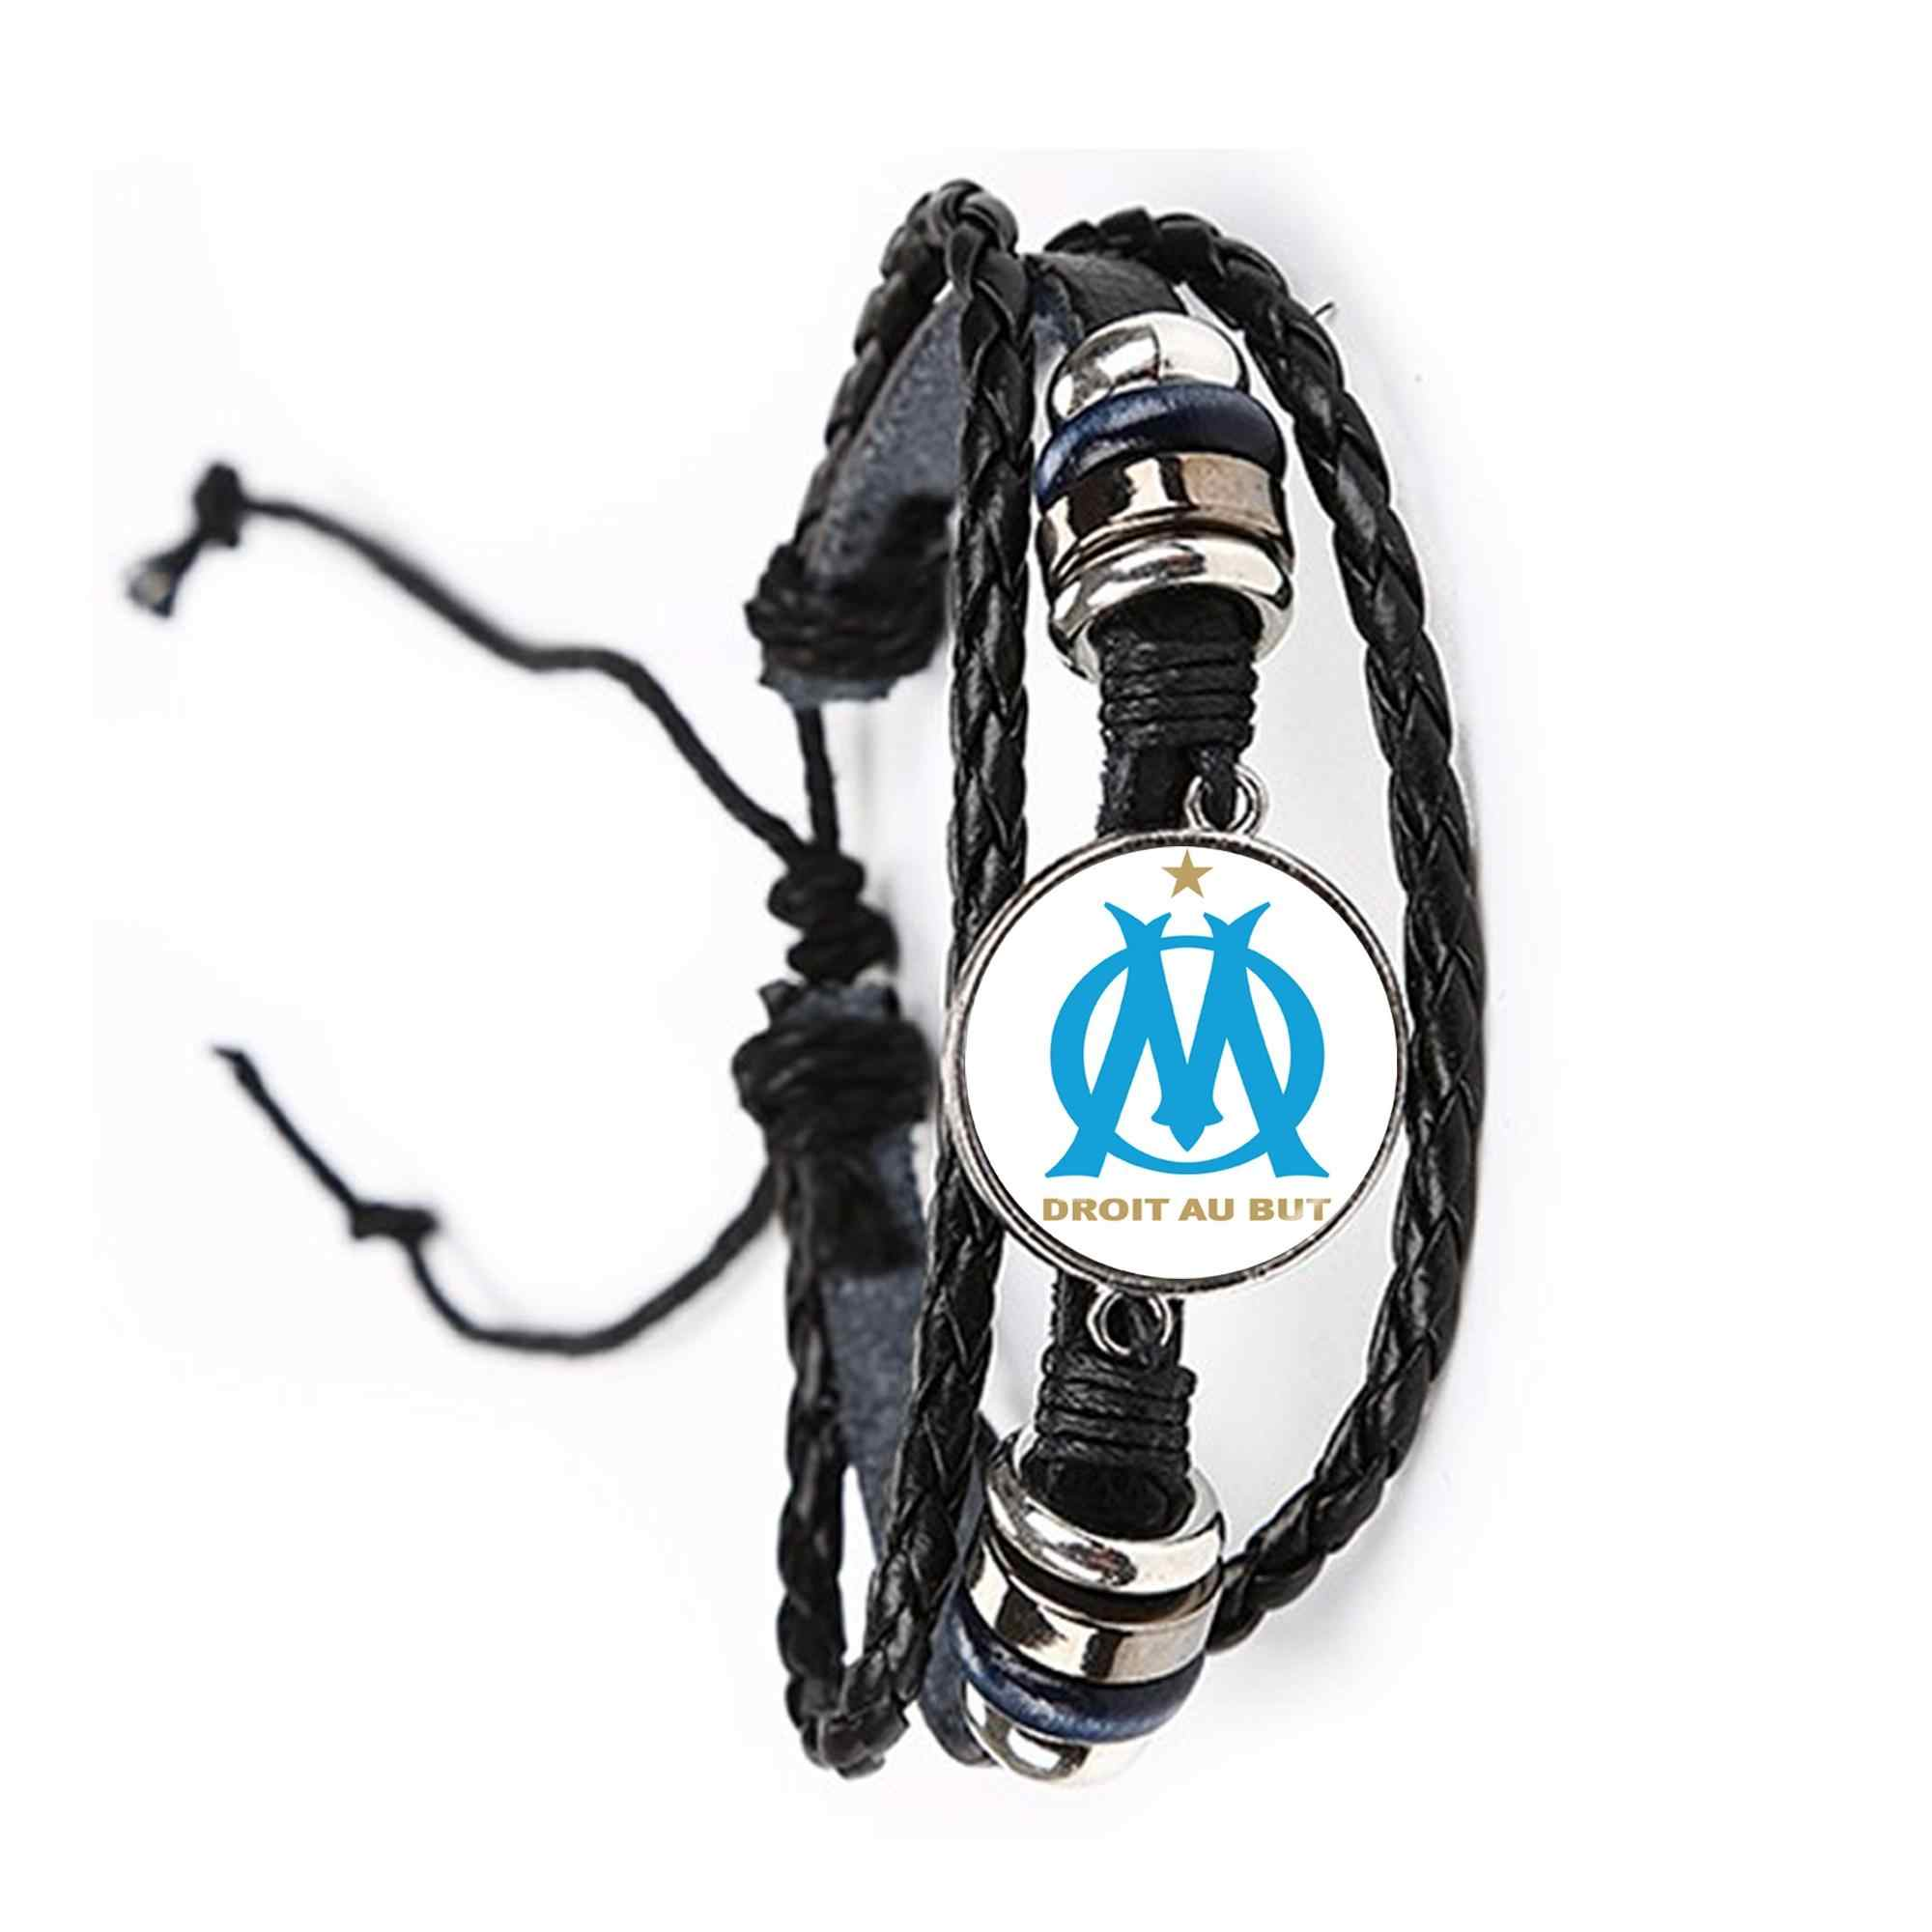 ASSE Olympique de Marseille Football Football Team Logo 20mm Glass Dome Bracelet For Football Fans' Commemorative Best Gifts